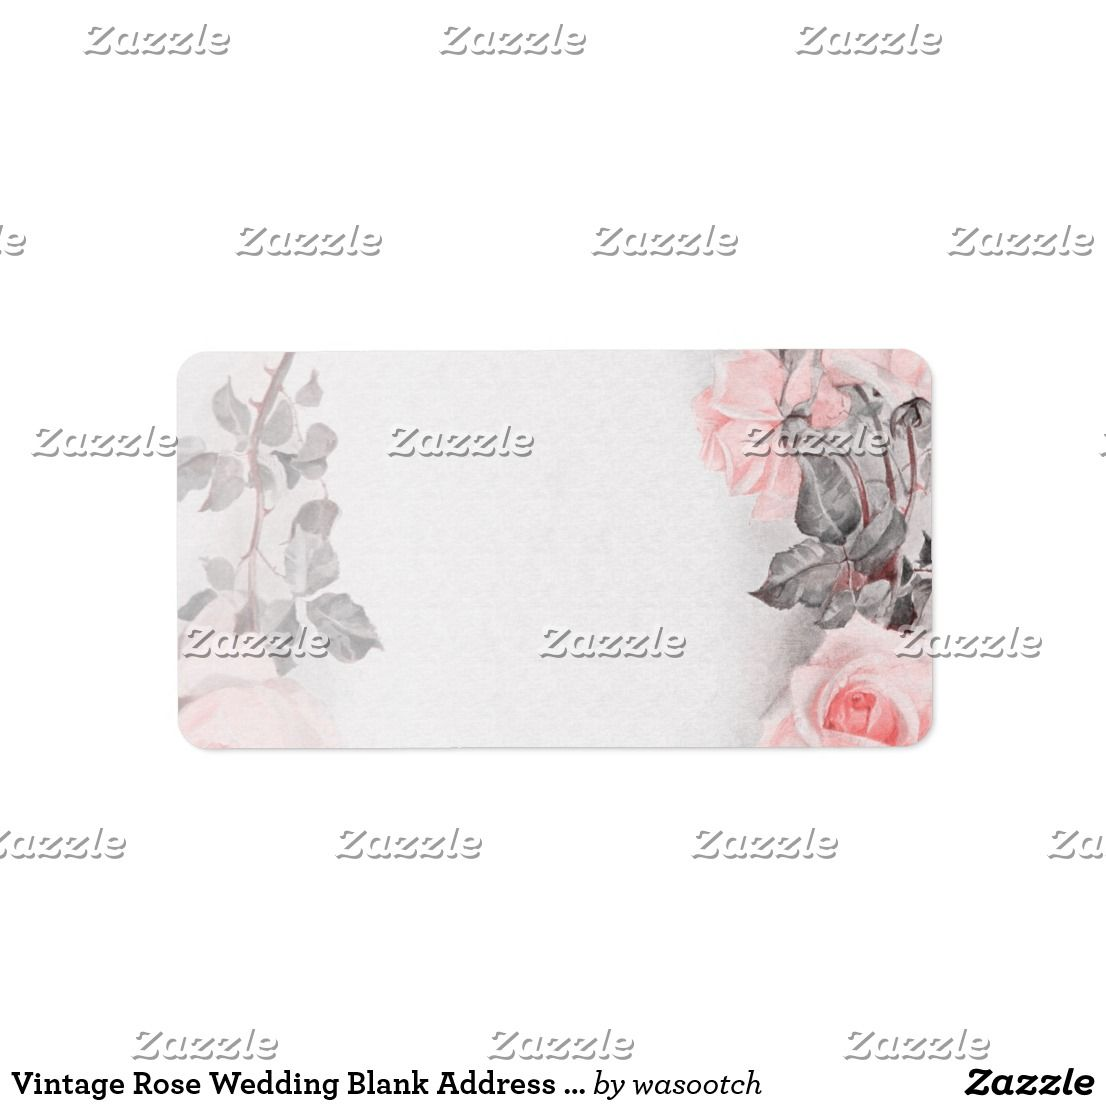 Vintage Rose Wedding Blank Address Labels Primrose Pink To Be Used For Your Invitations Or Just Use It As